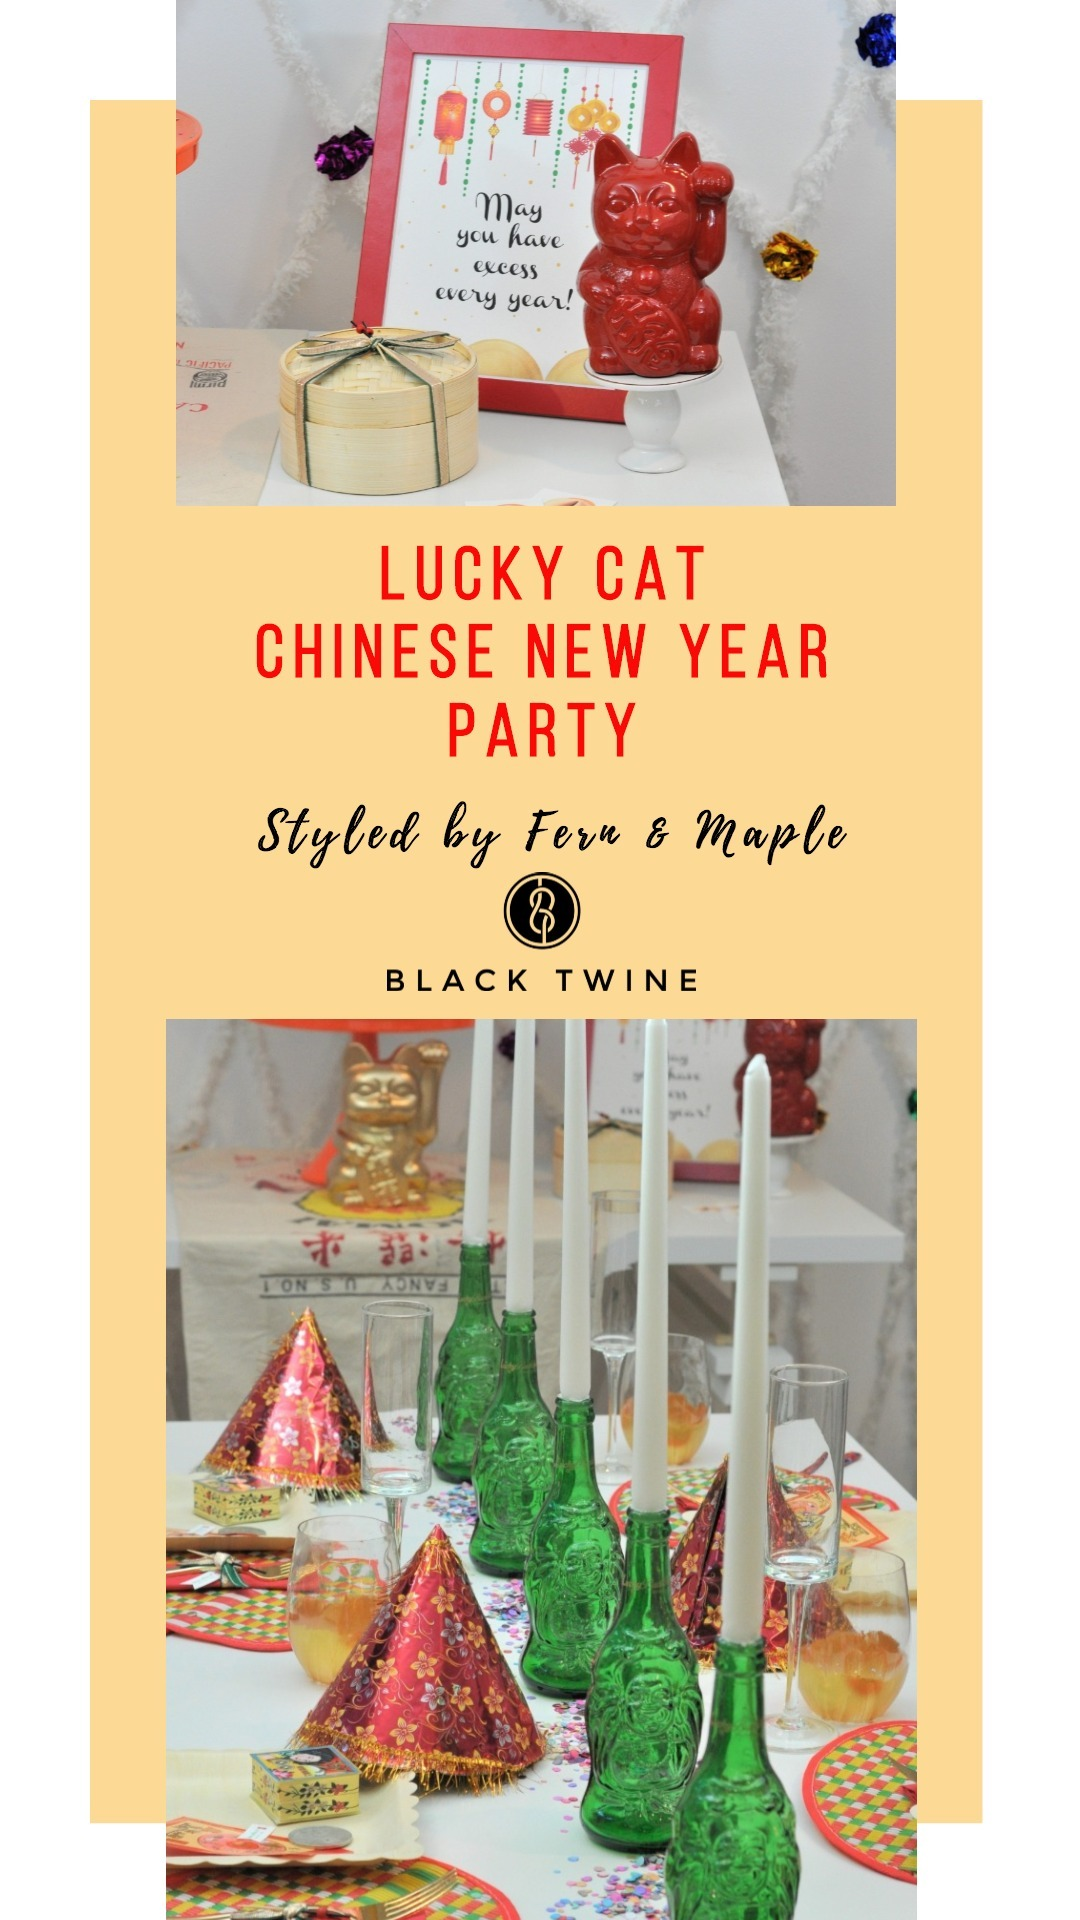 Lucky Cat Chinese New Year Party by Fern & Maple | Black Twine